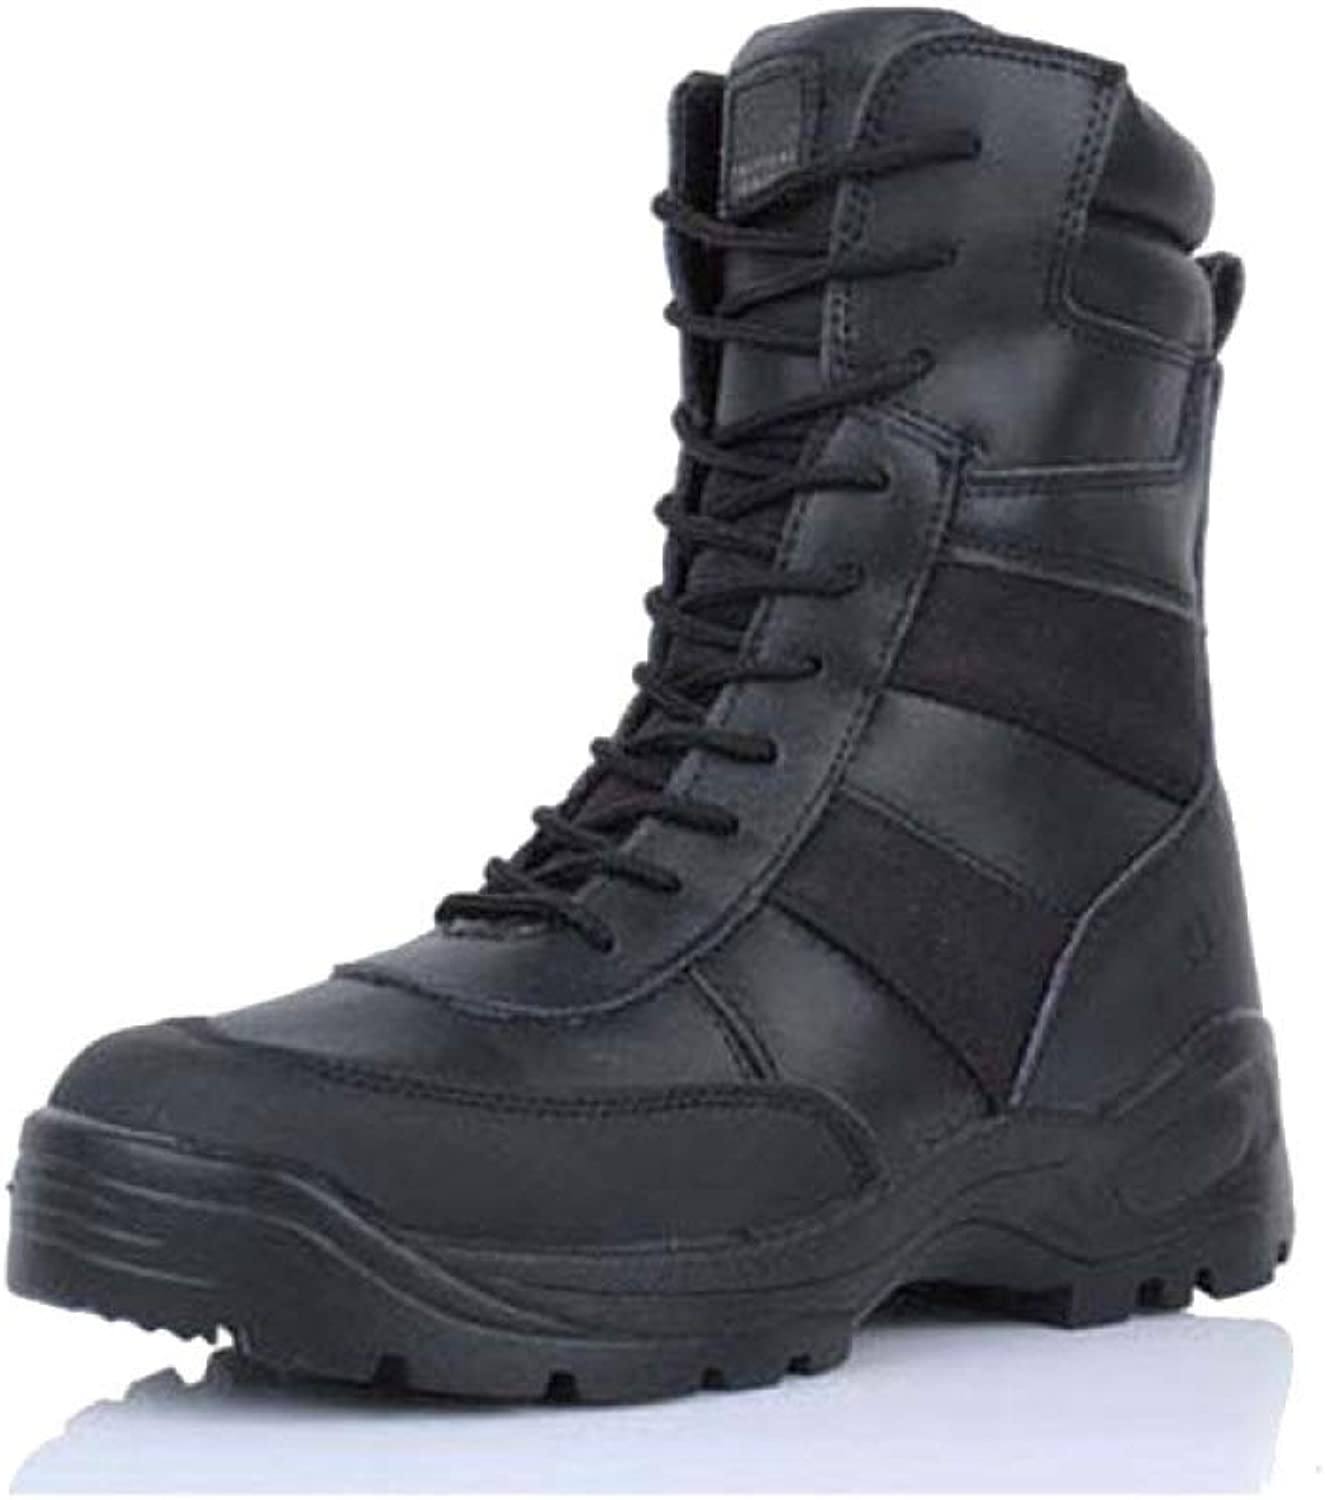 FXMYL Army Boots Desert Boots Combat Boots Army Fan Outdoor Tactical Training Boots Hiking Boots